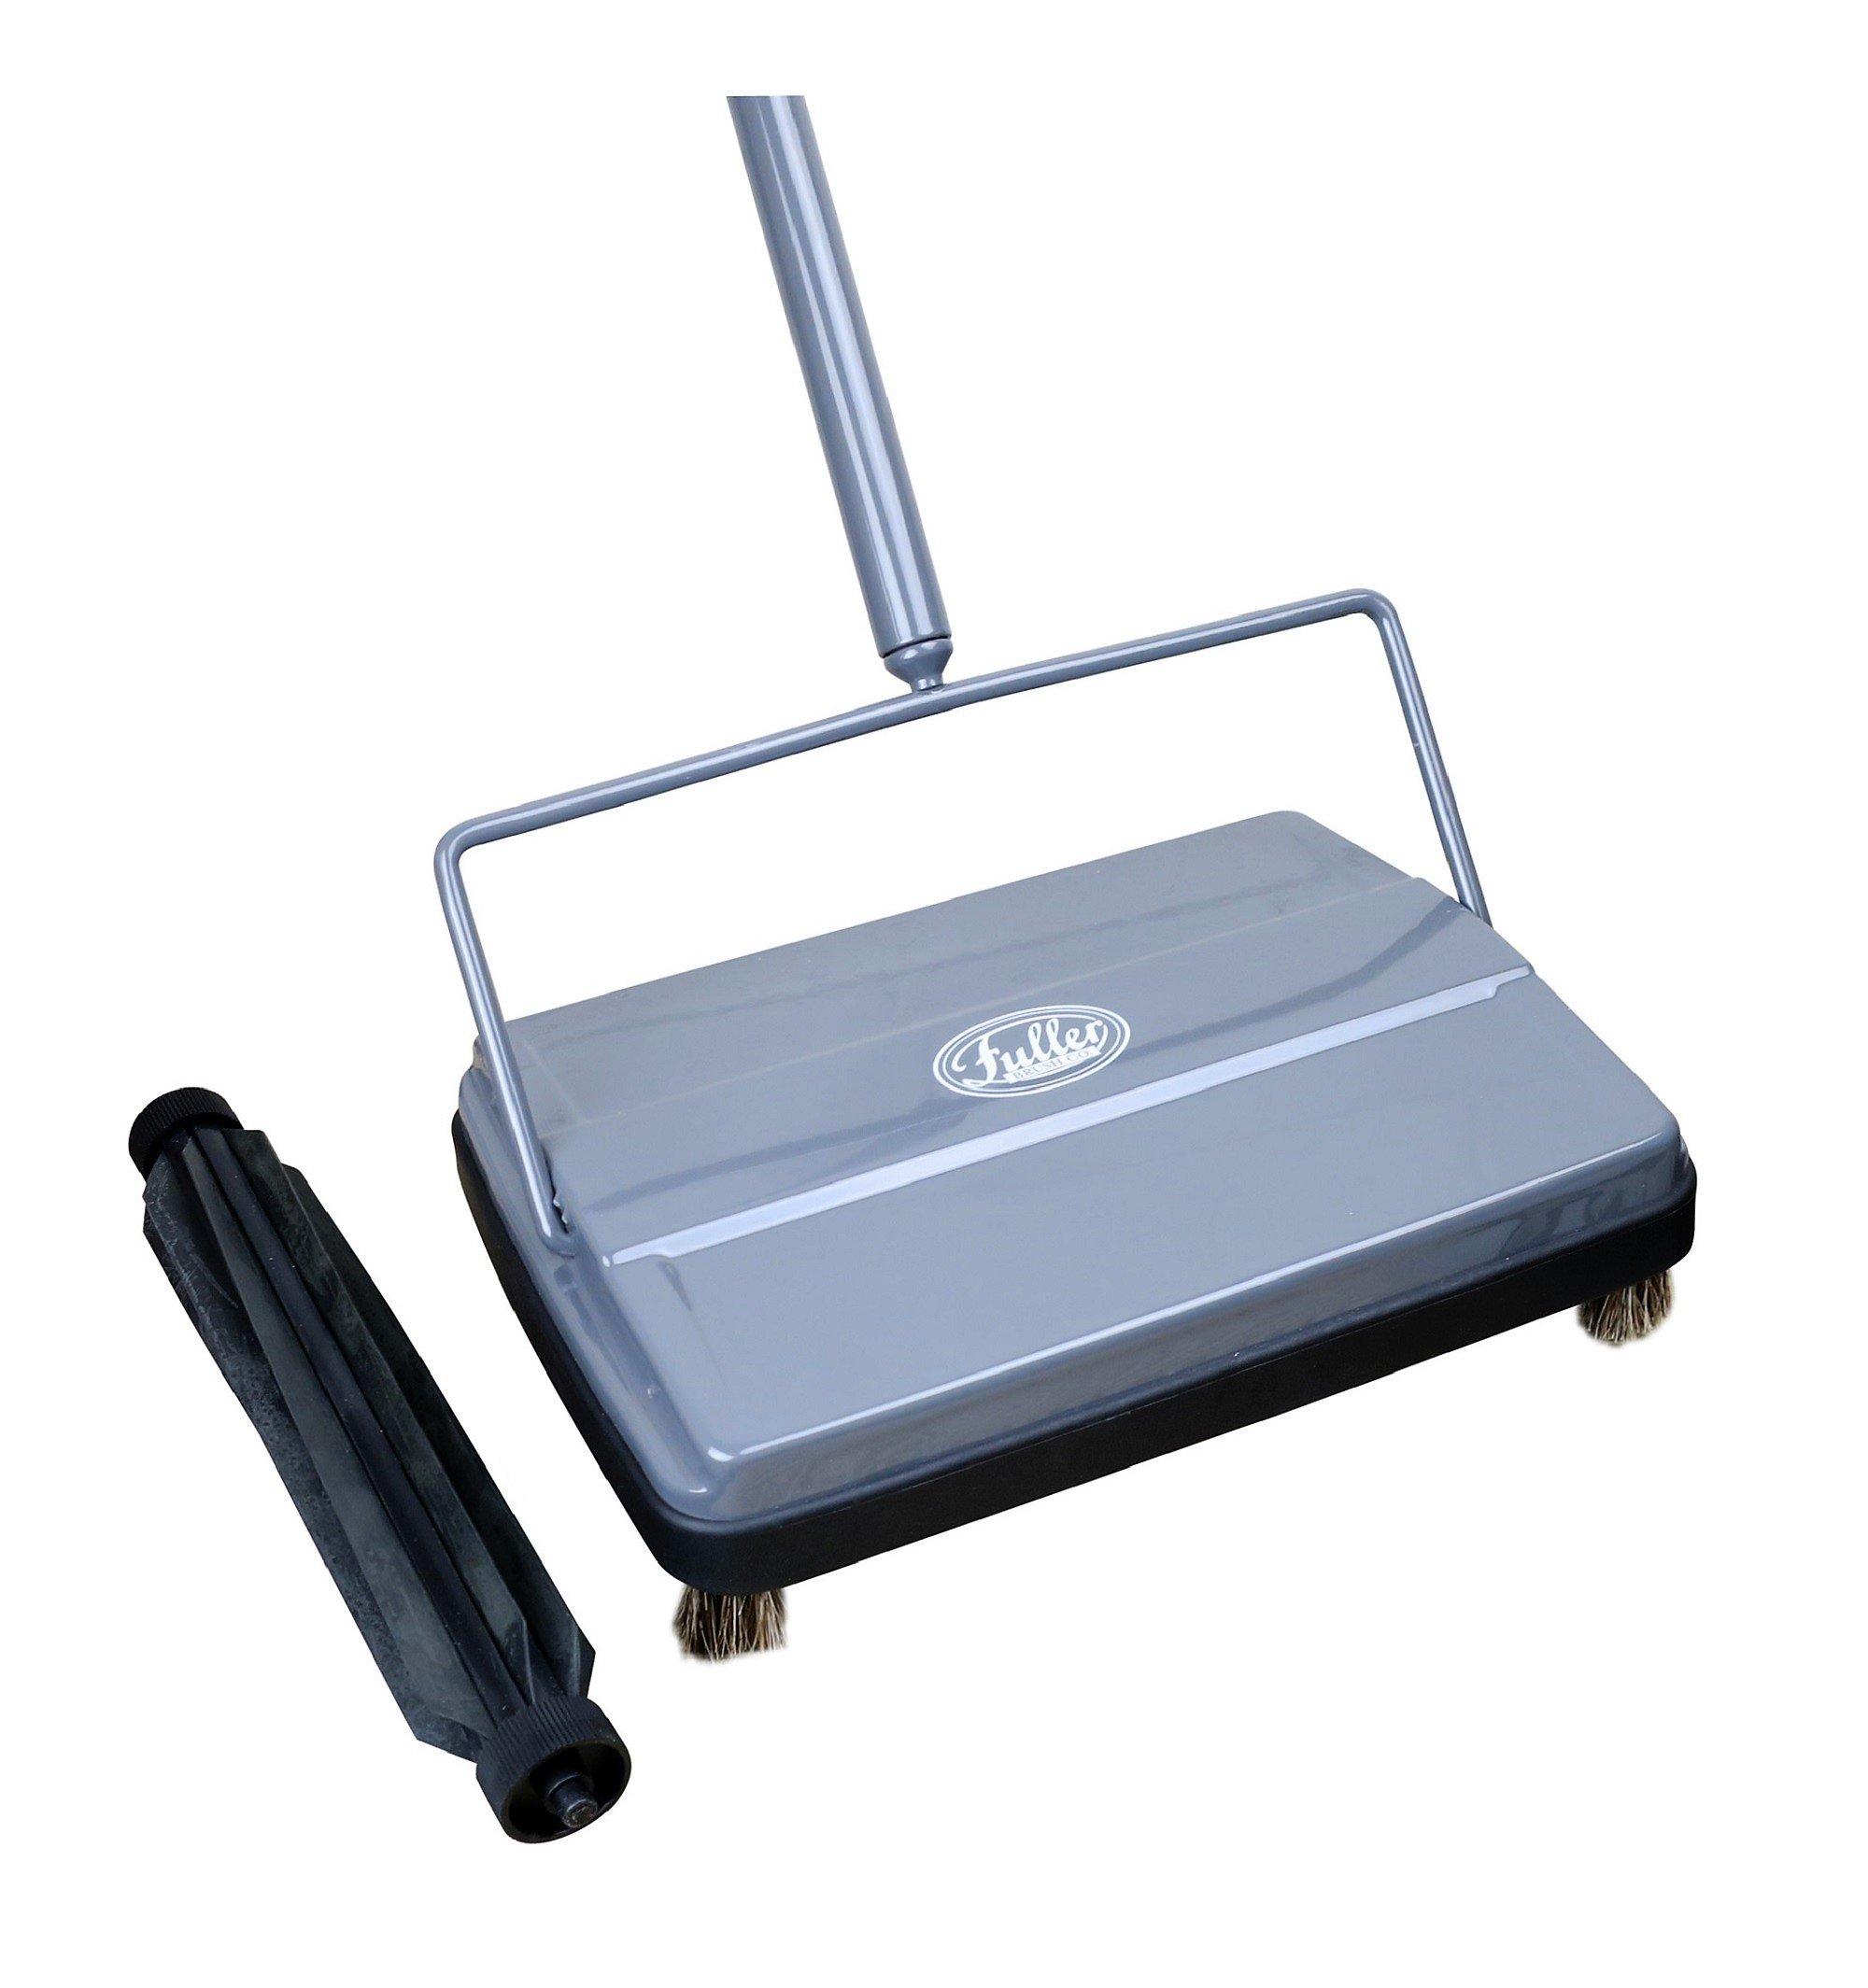 Fuller Brush 17042 Electrostatic Carpet & Floor Sweeper with Additional Rubber Rotor - 9'' Cleaning Path - Lightweight - Ideal for Crumby & Wet Messes - Works On Carpets & Hard Floor Surfaces - Gray by Fuller Brush